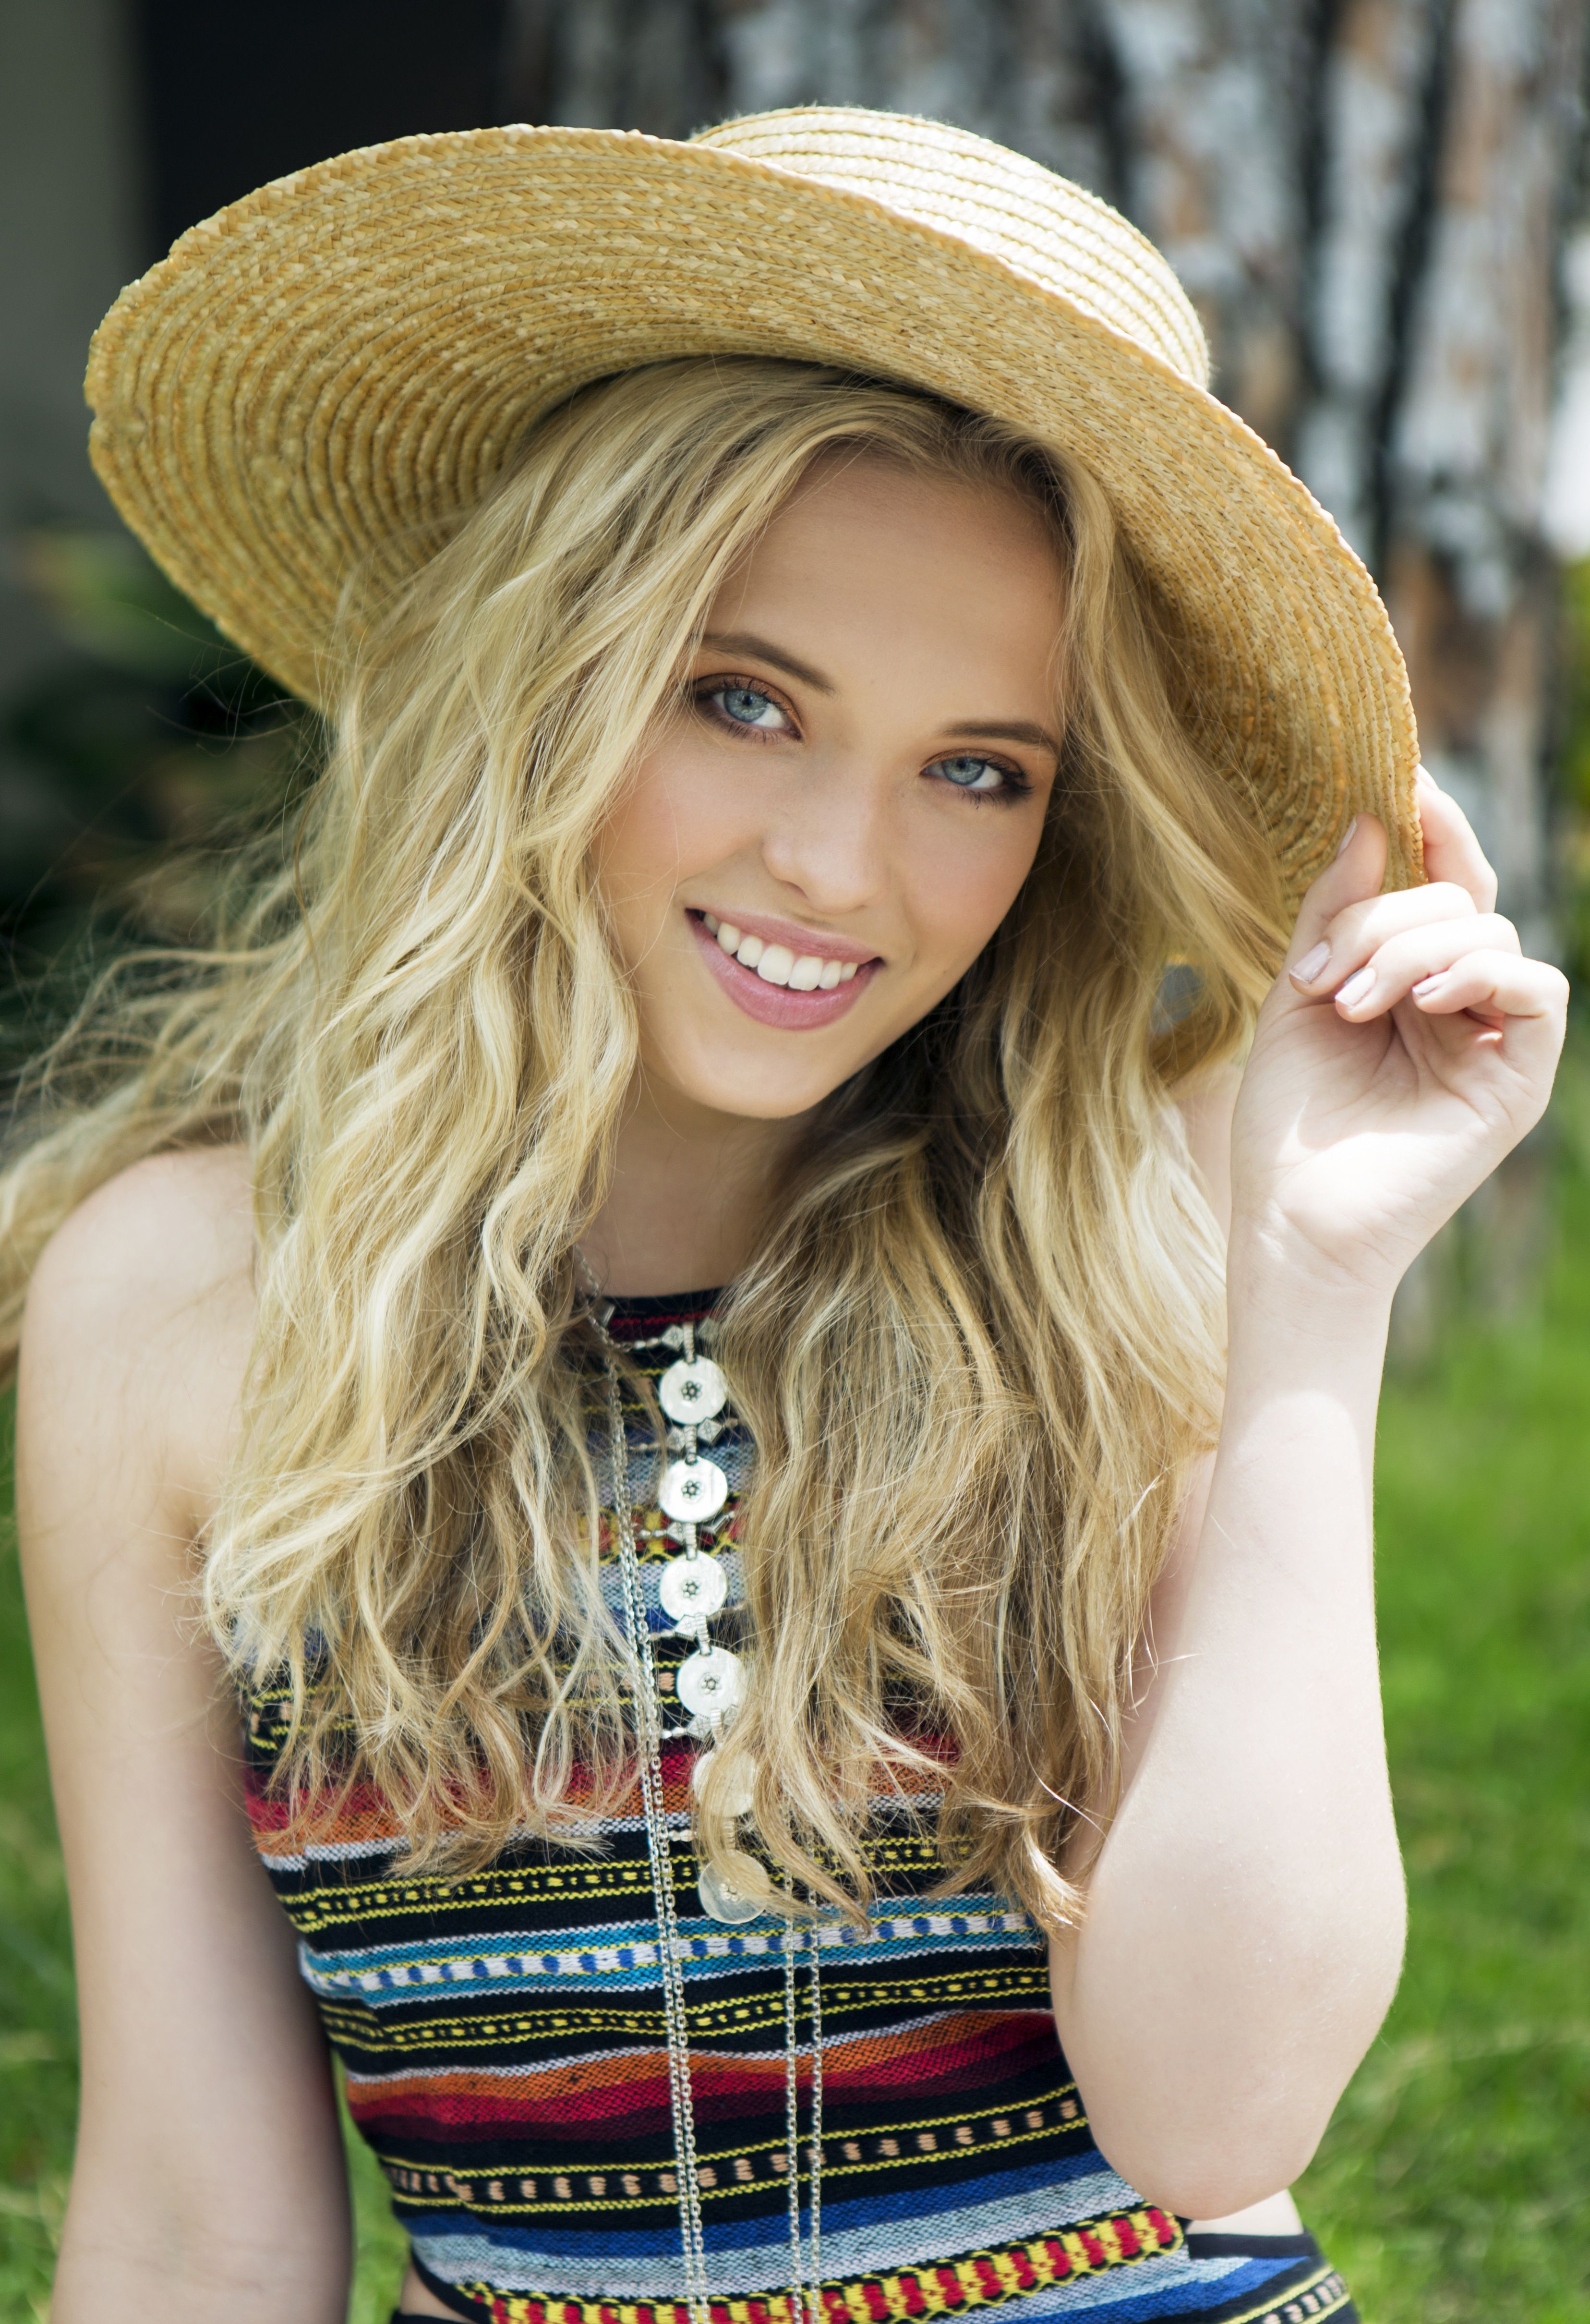 Lauren Taylor Shares What She Learned About Herself From Playing Her Best Friends Whenever Character Lauren Taylor Best Friends Whenever Lauren